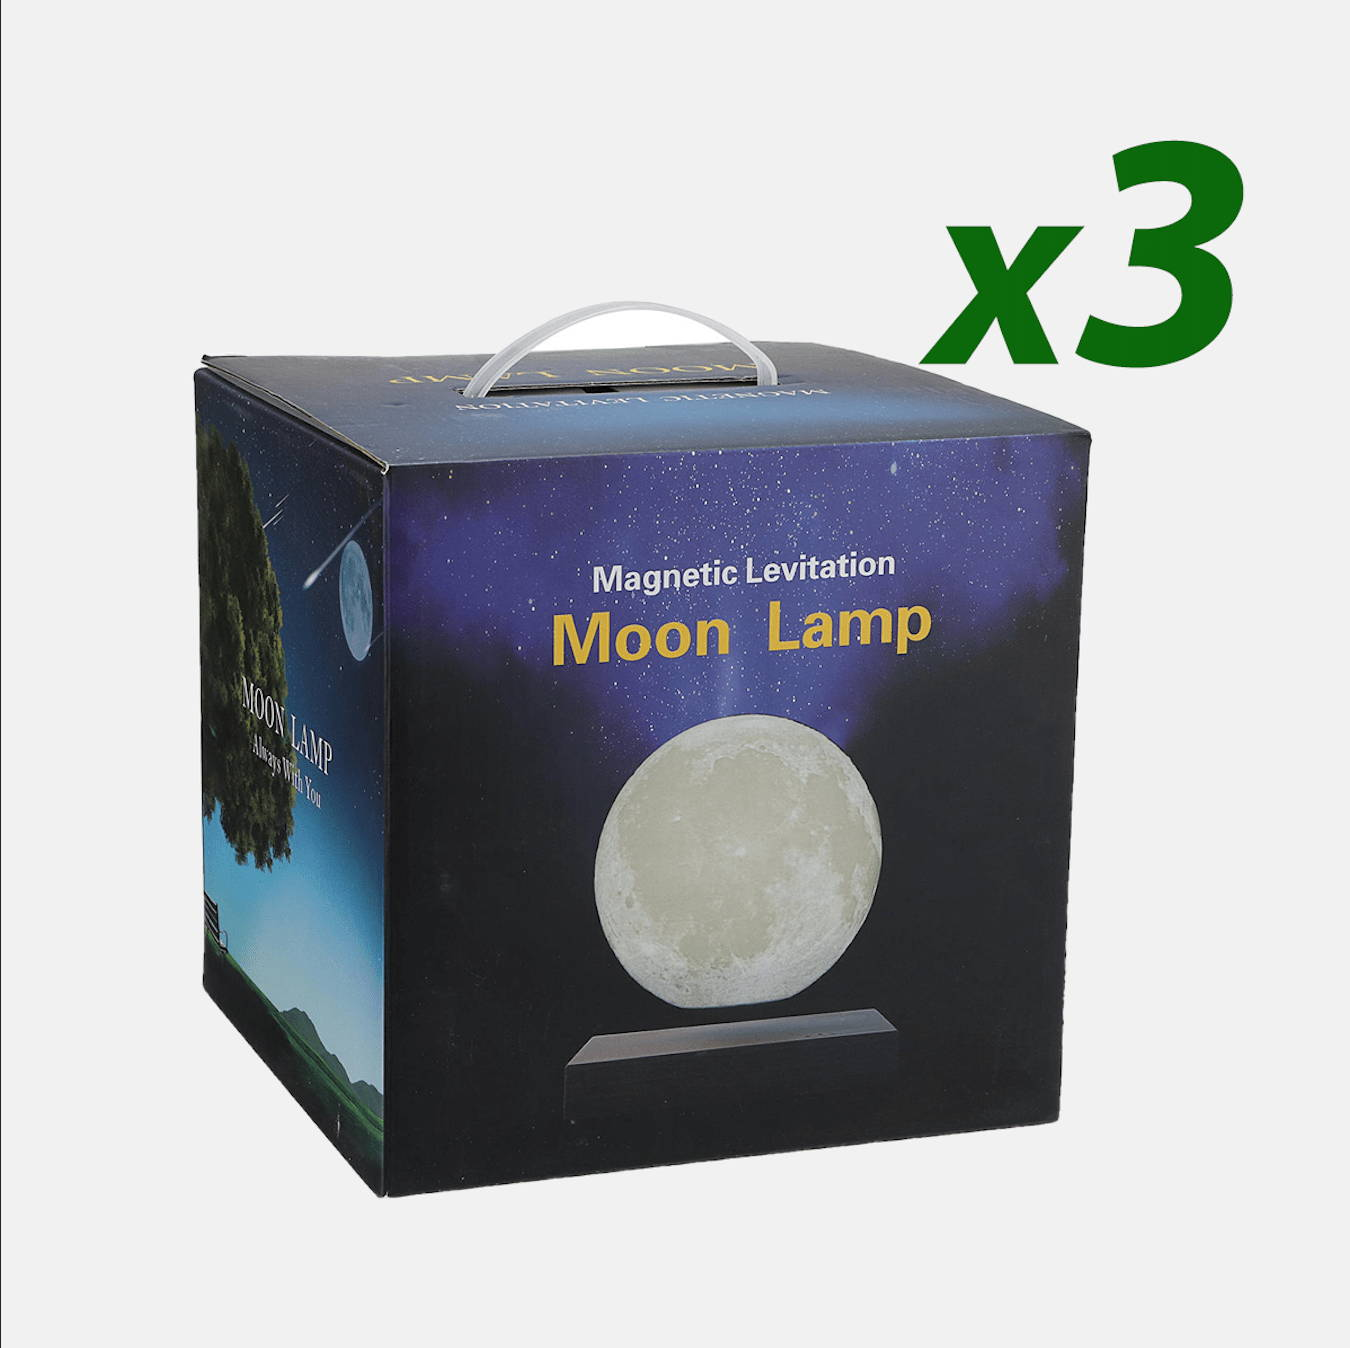 High Quality Lamp, Eco-Friendly Moon Lamp, Moon Lamp On Sale, Save On Levitating Moon Lamp